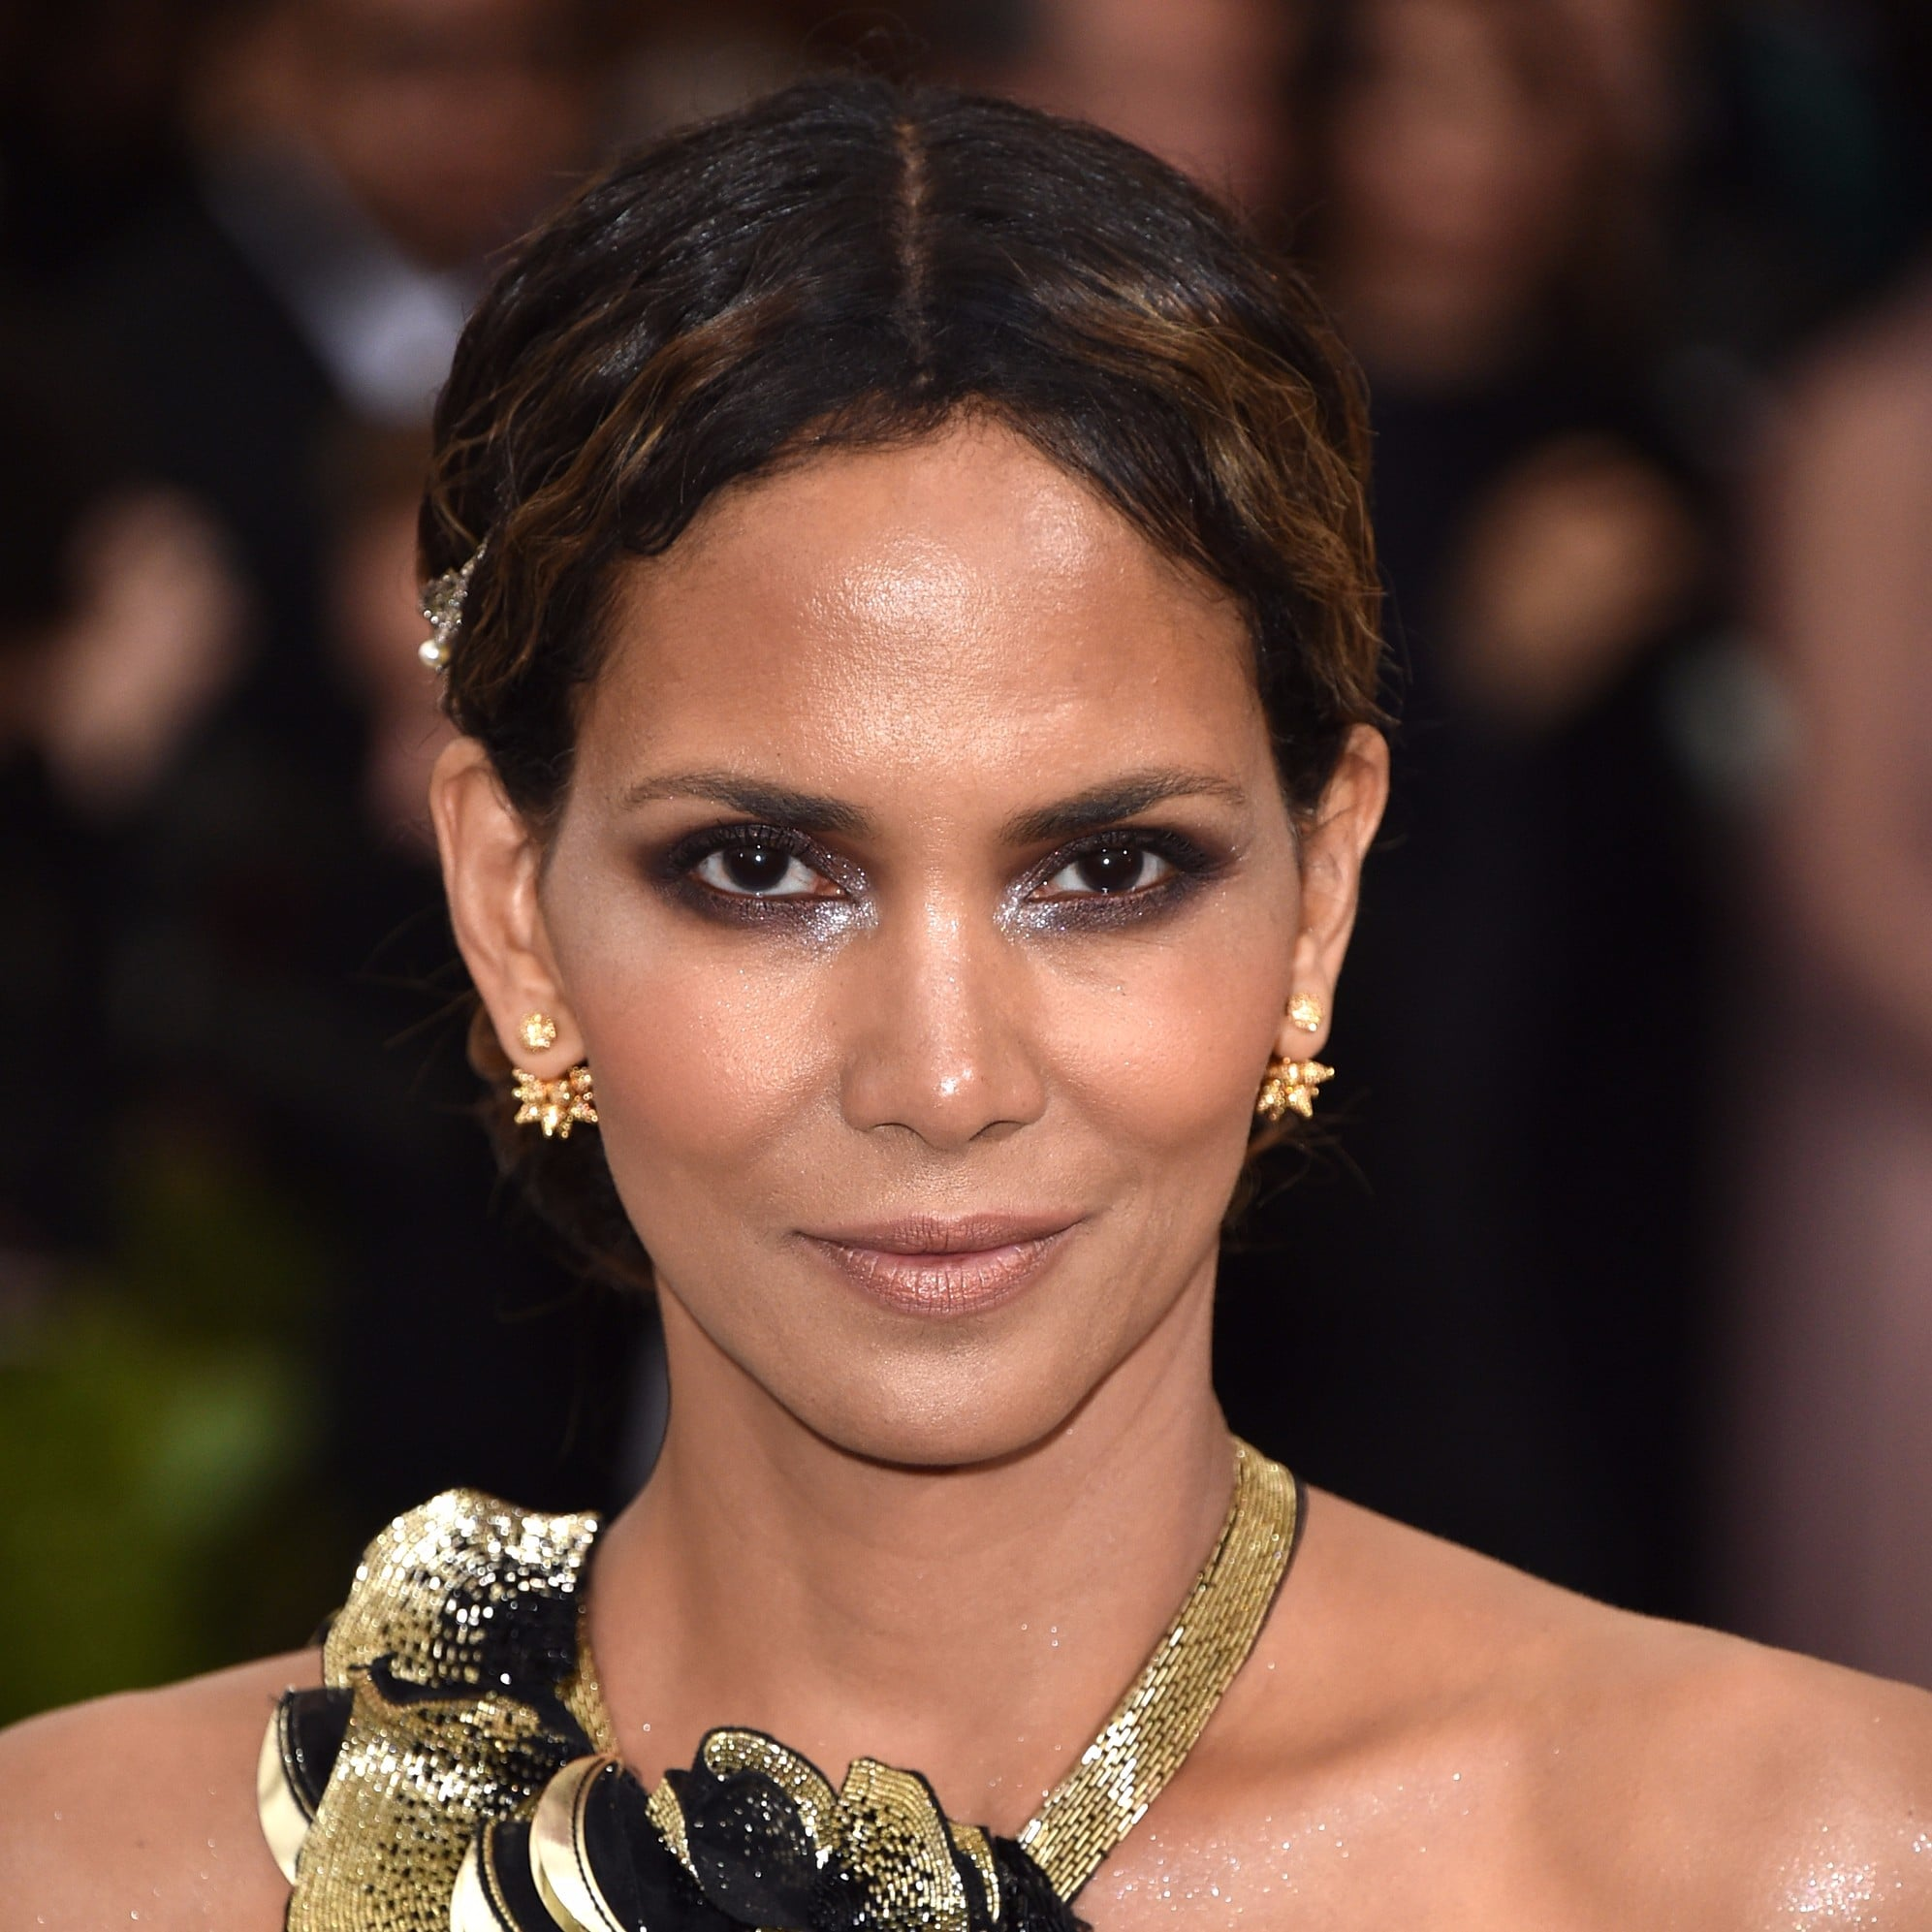 Halle-Berry-Hair-2017-Met-Gala.jpg